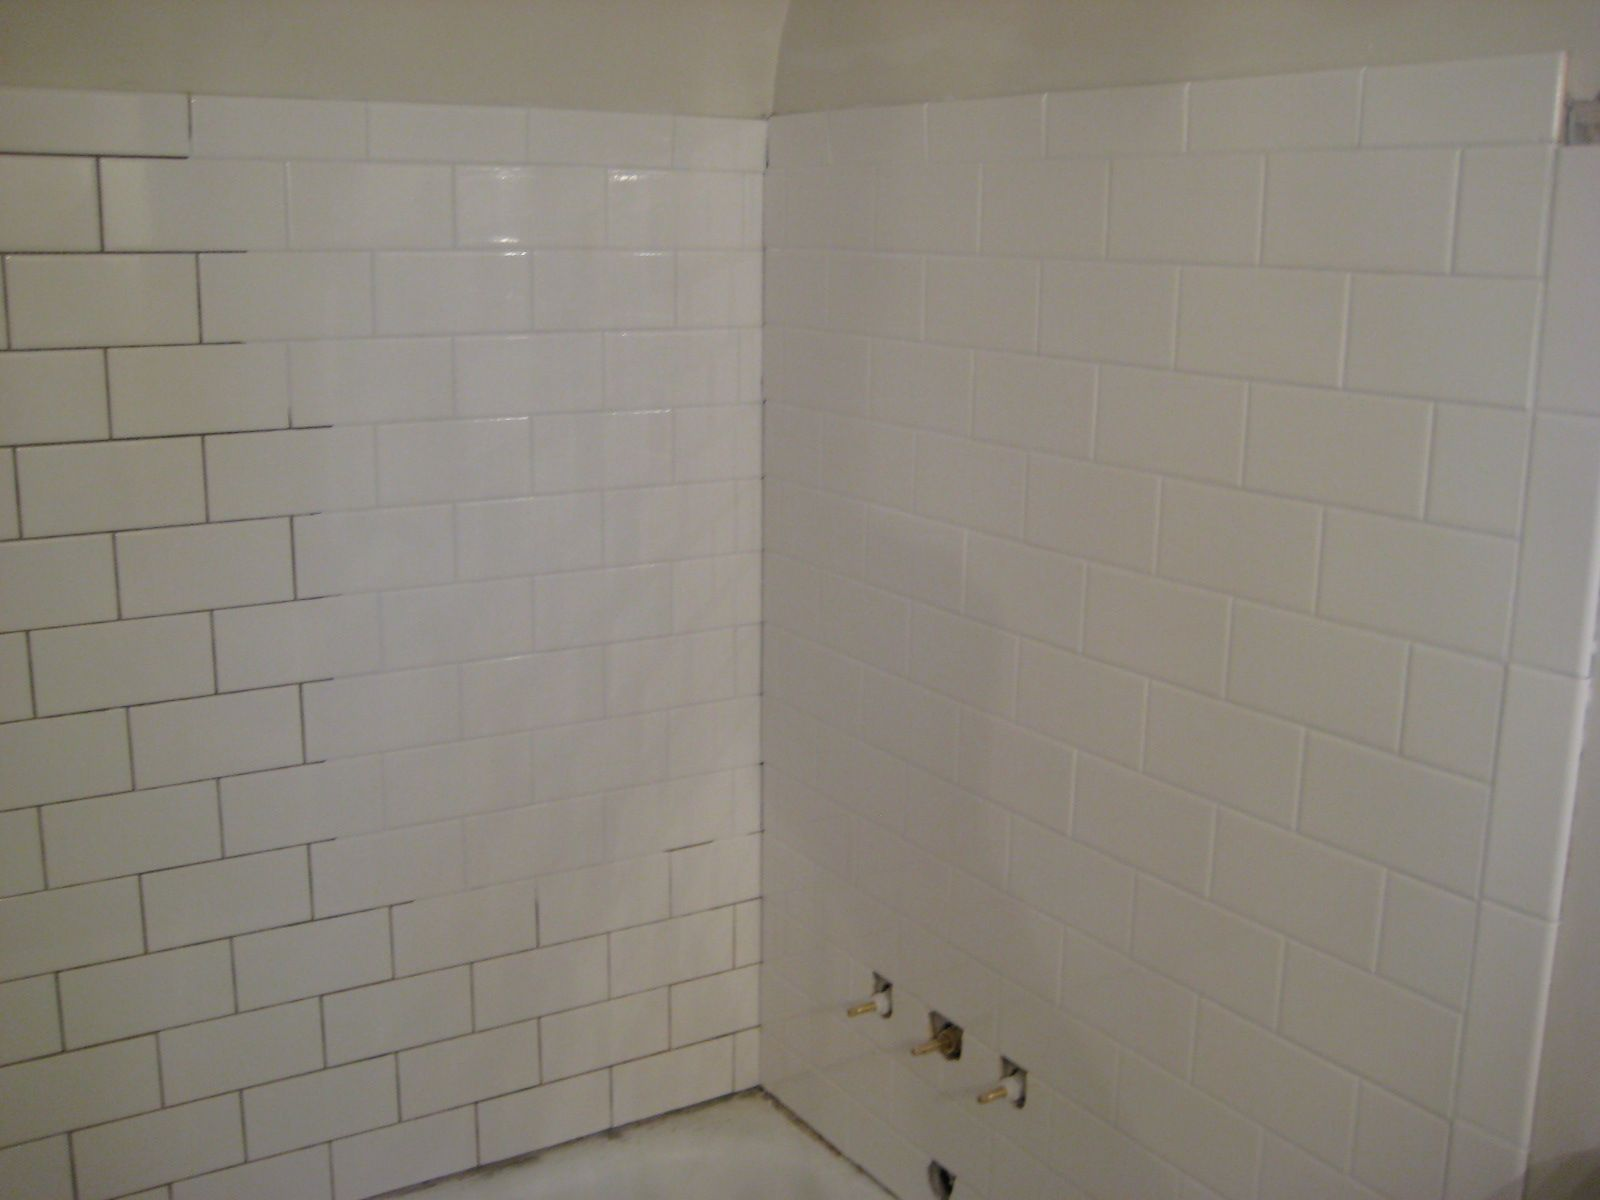 White subway tile white grout image collections tile flooring white subway tile shower gray grout google search master bath white subway tile shower gray grout dailygadgetfo Images